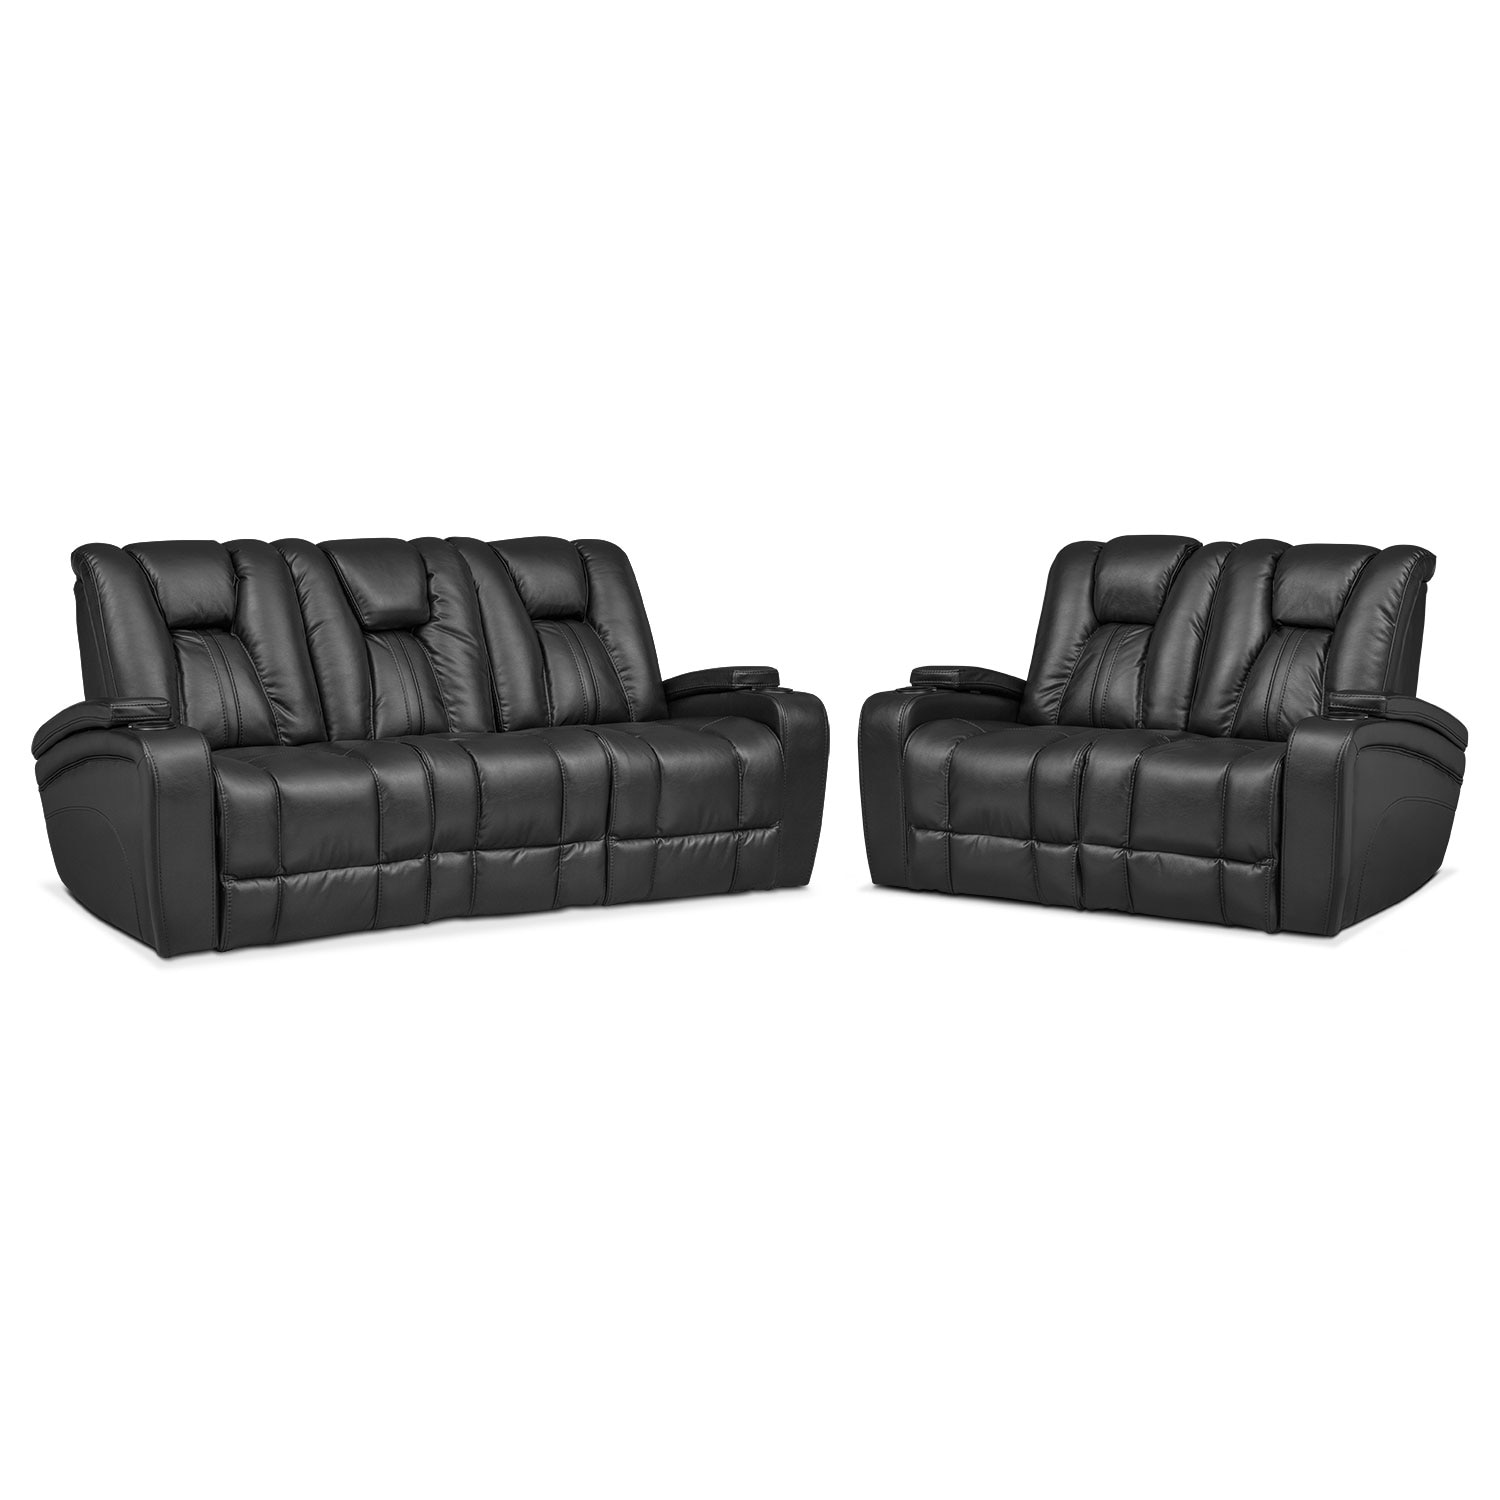 Pulsar Dual Power Reclining Sofa and Dual Power Reclining Loveseat Set - Black